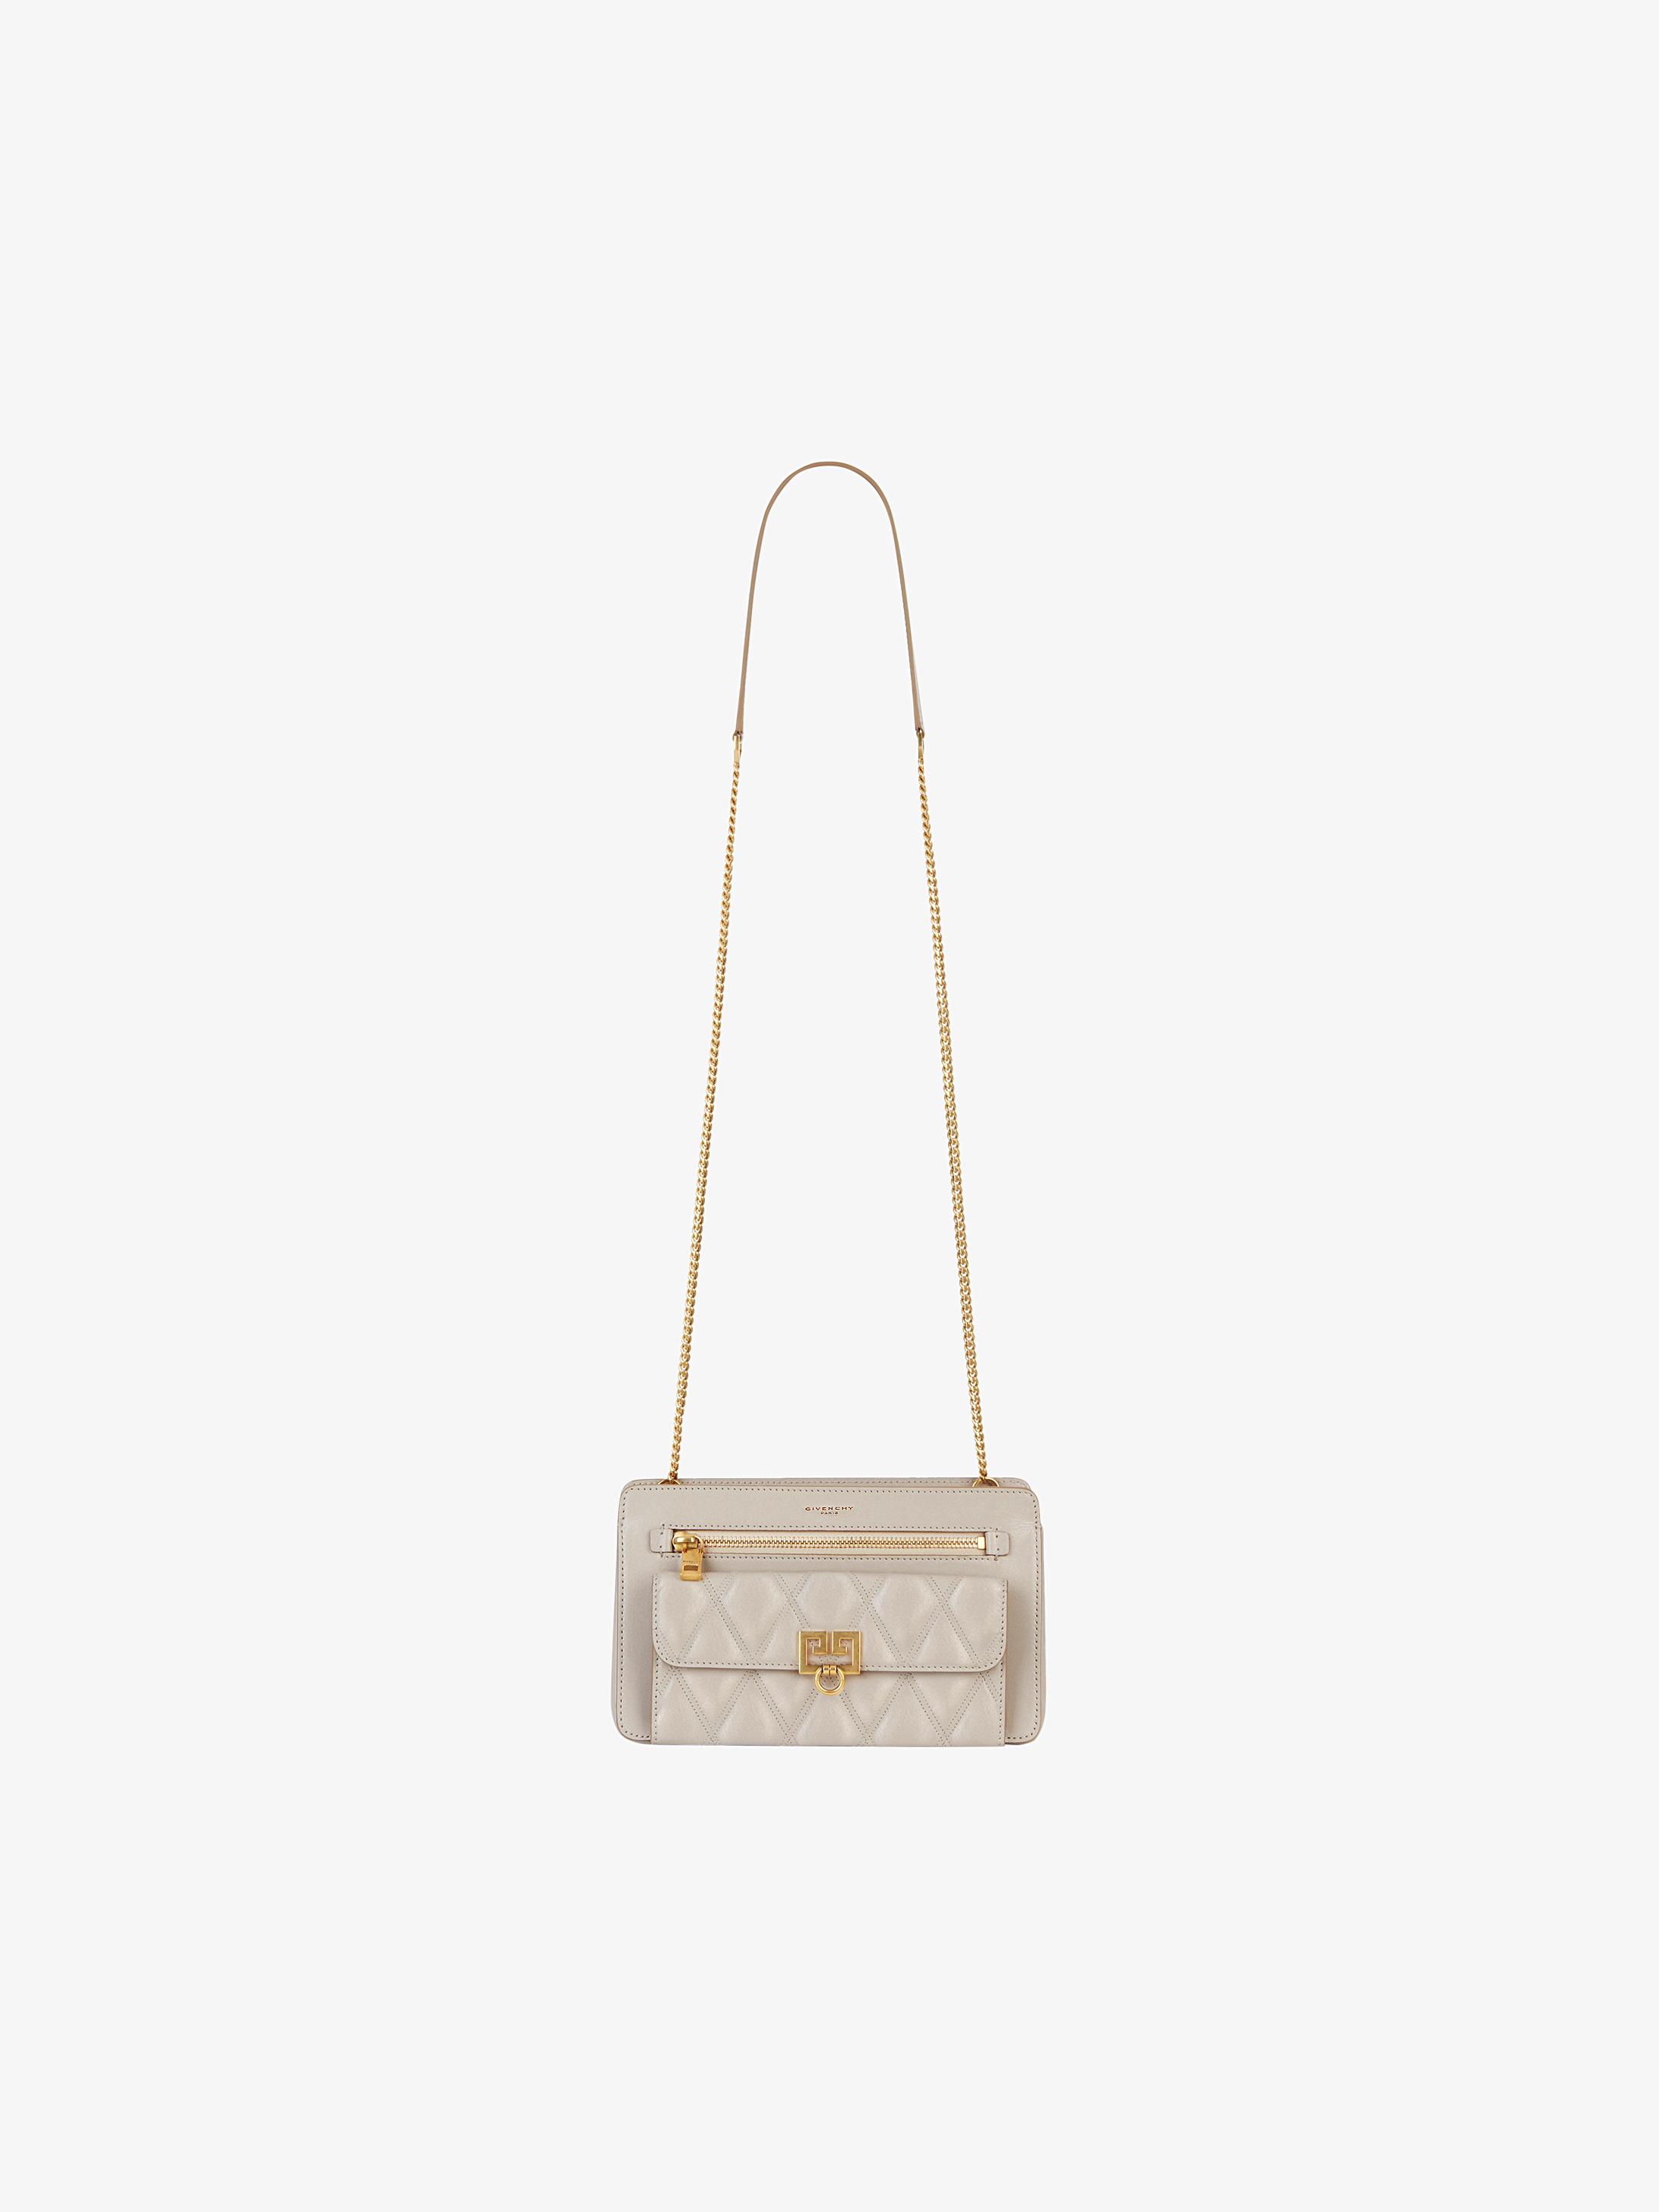 Pocket bag in diamond quilted leather